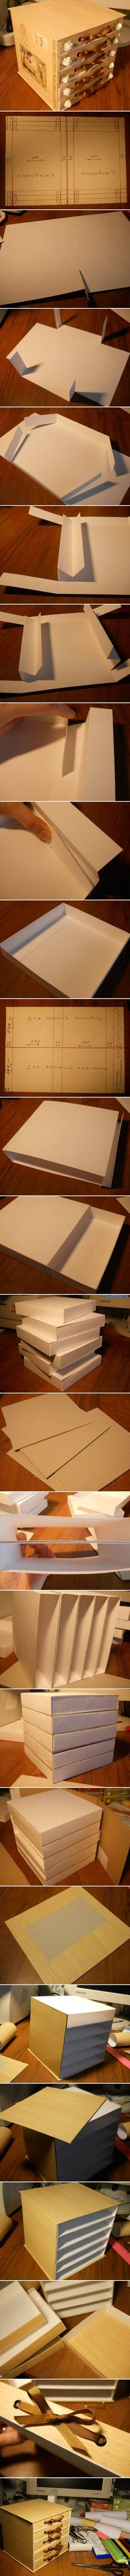 DIY 5-Drawer Cardboard Organizer | iCreativeIdeas.com Like Us on Facebook ==> https://www.facebook.com/icreativeideas